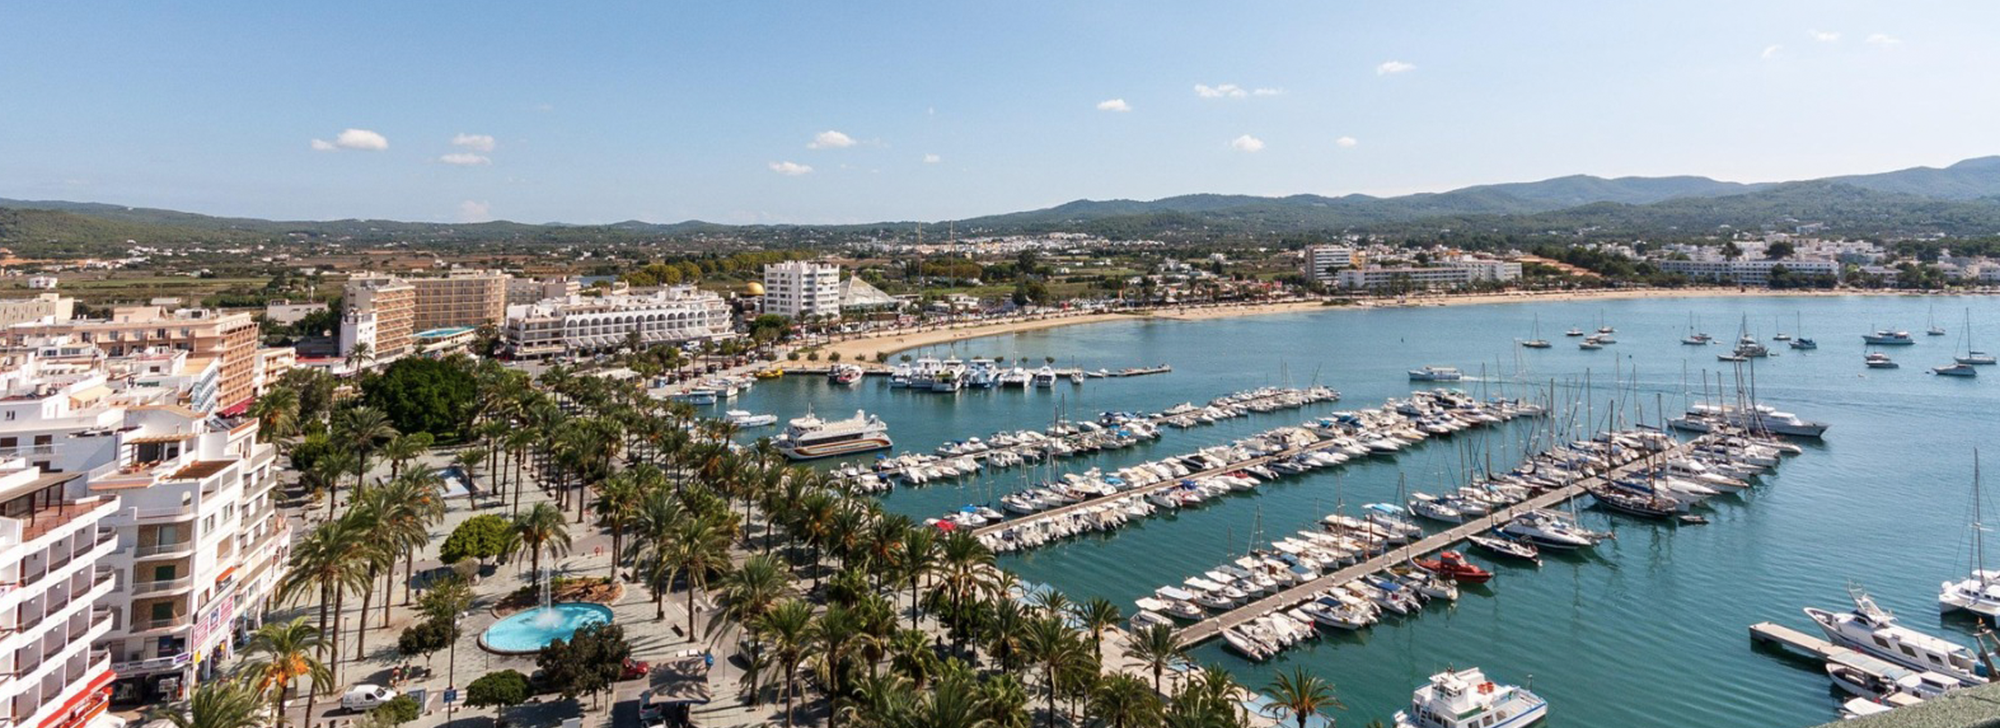 Neighbourhoods to check out in Ibiza